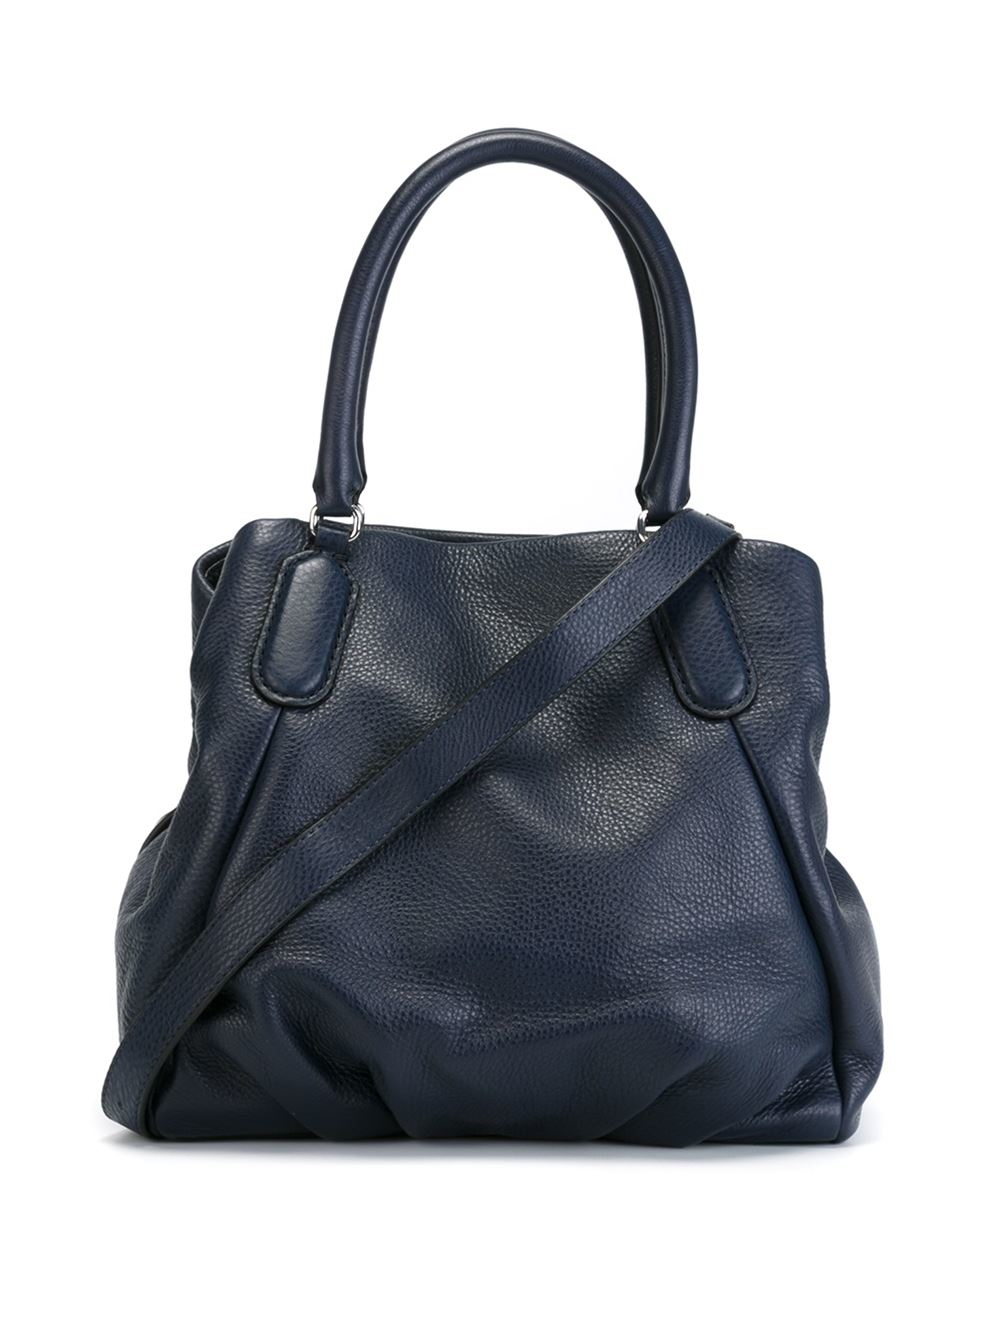 marc by marc new q fran tote bag in blue lyst